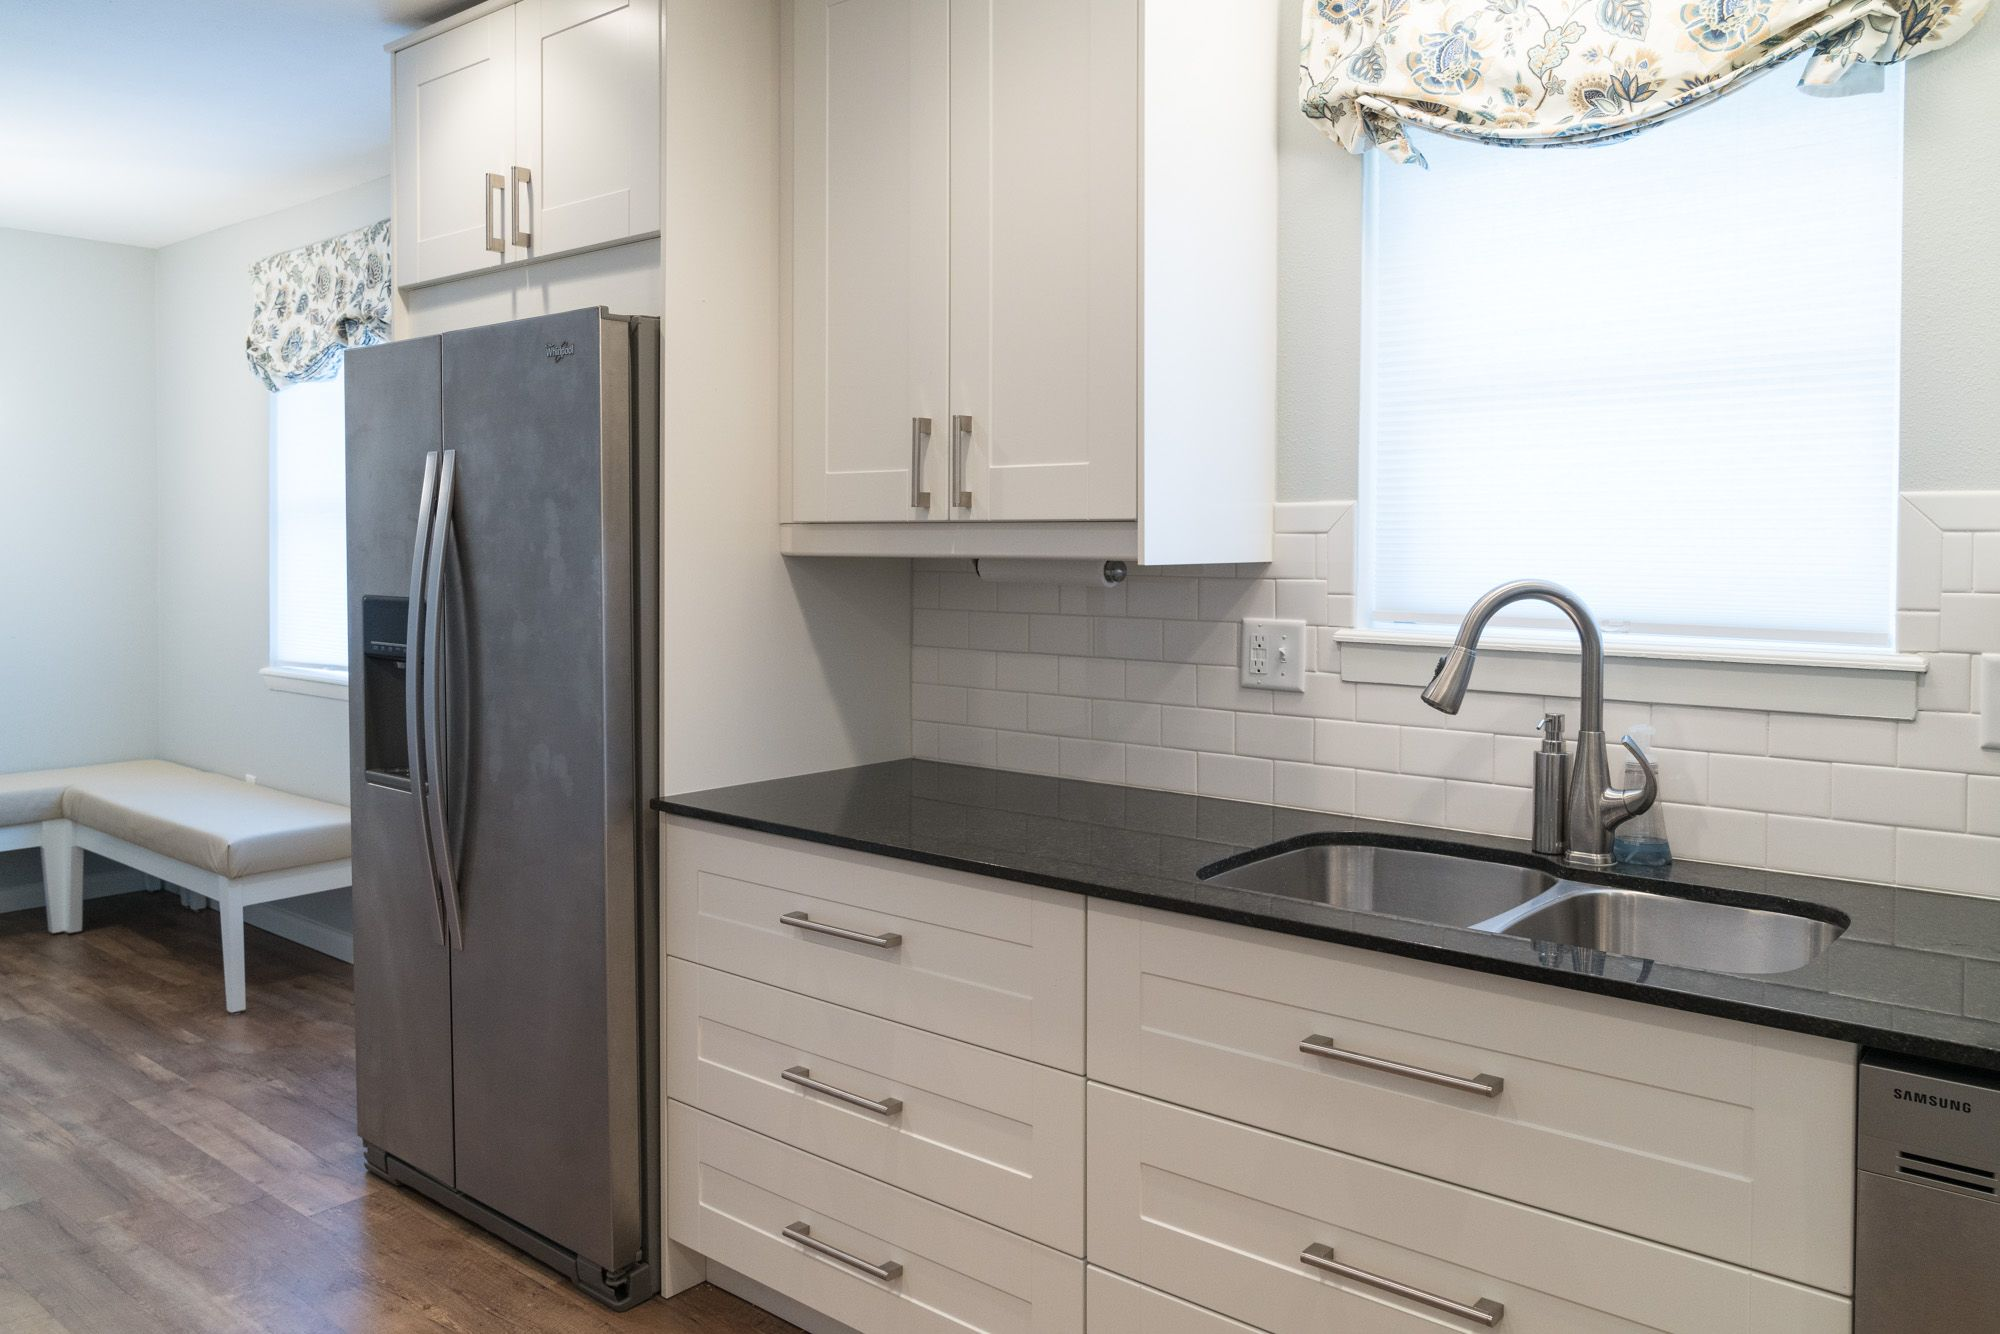 How An Ikea Kitchen Saved This Rental Property Ikea Kitchen Design Ikea Kitchen Kitchen Design